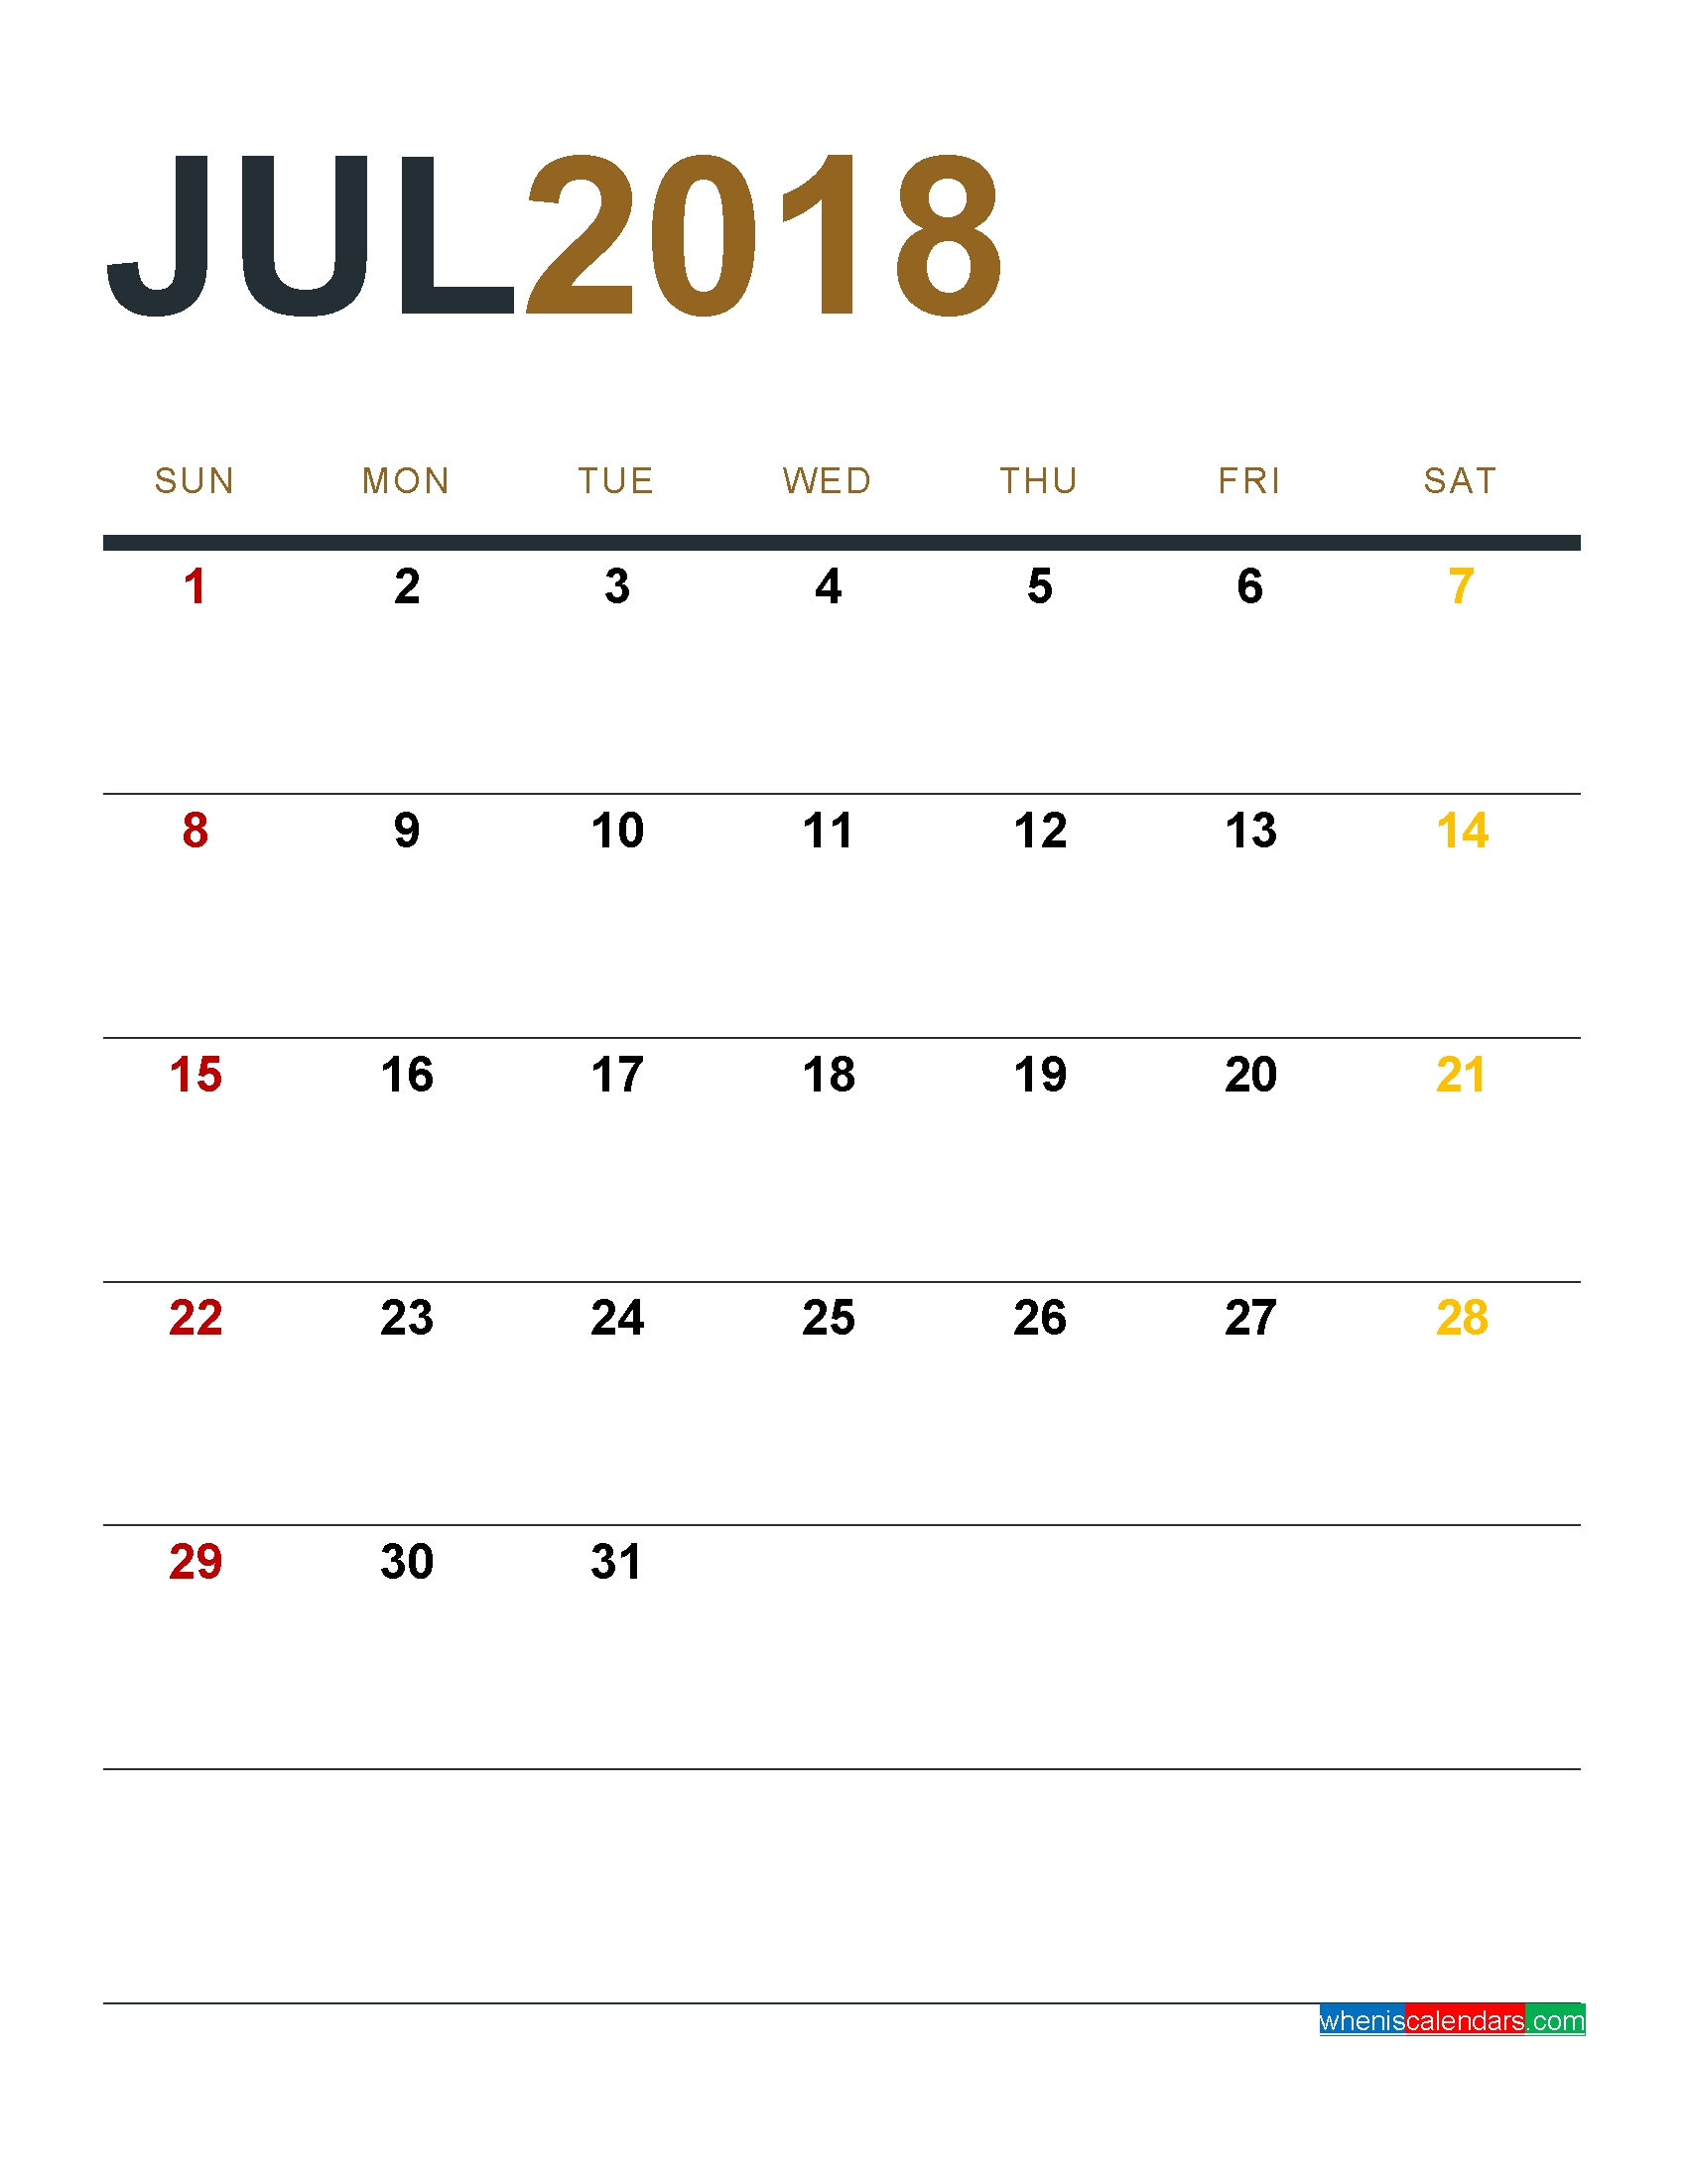 August 2018 Calendar Printable As Pdf And Image 1 Month 1